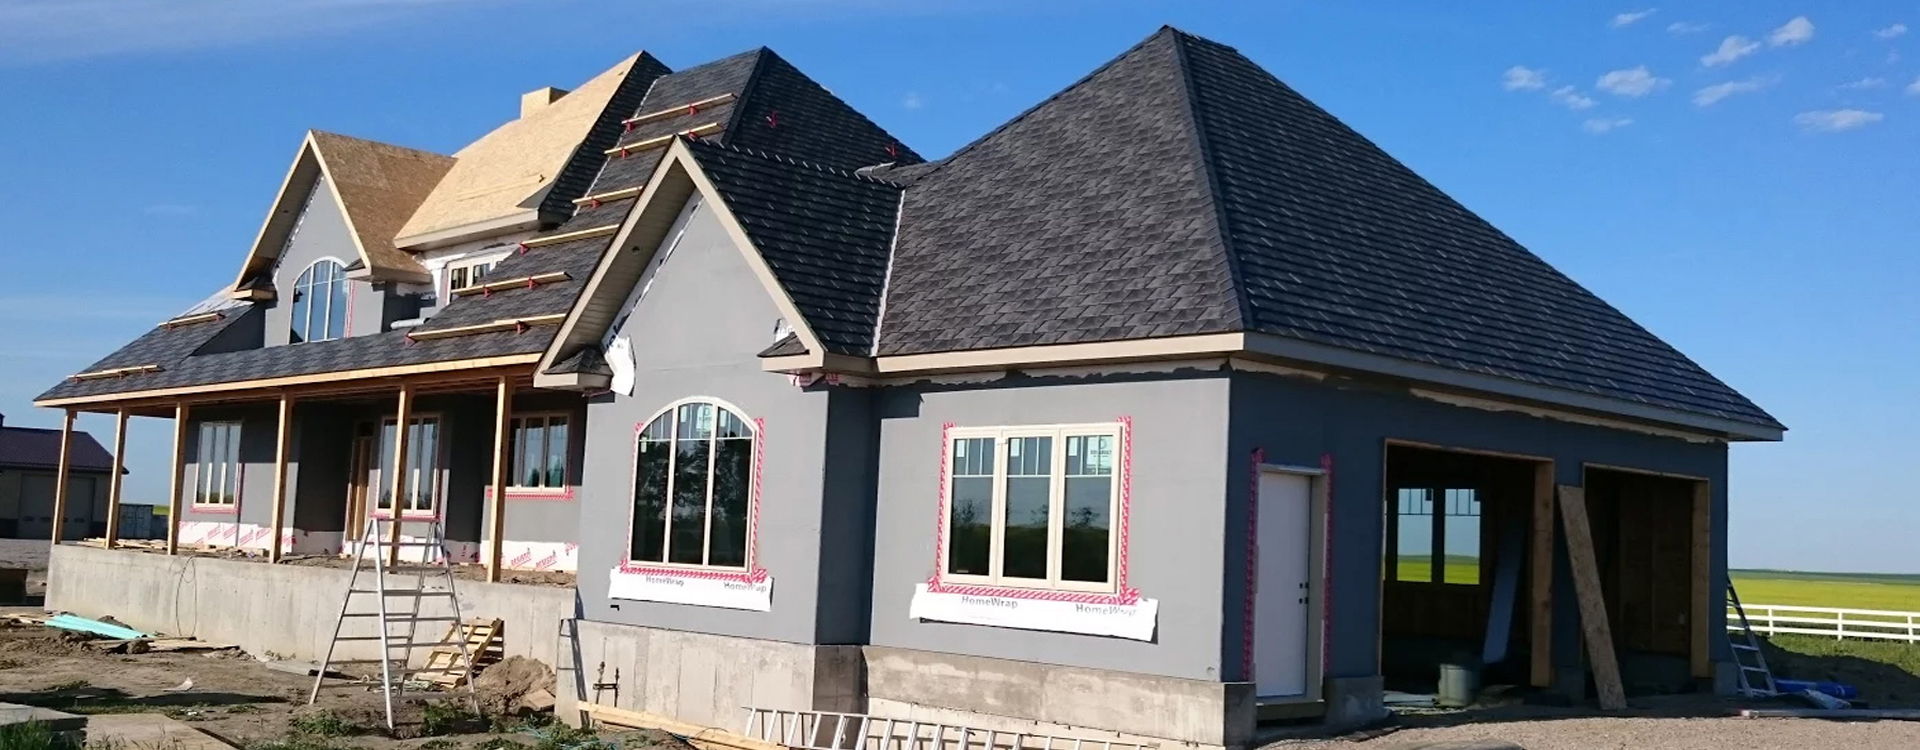 Euroshield Rubber Slate Shingles